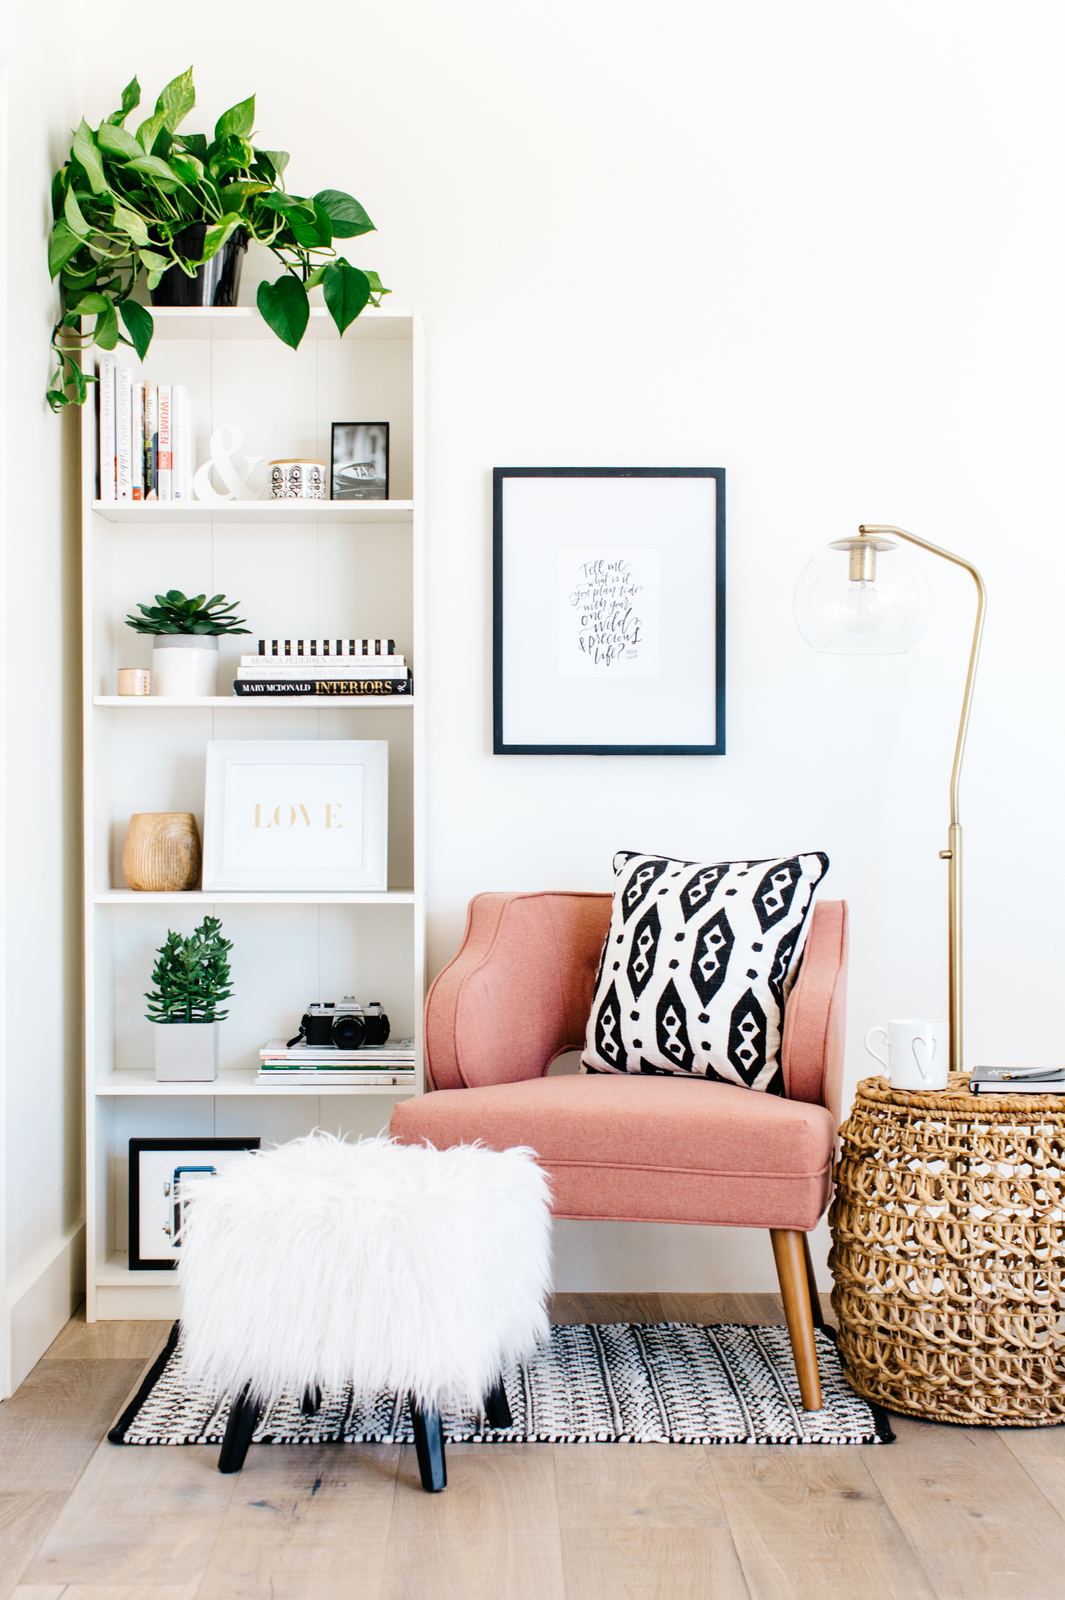 a cozy corner with a pink armchair, a floor lamp and some poufs is an ideal reading nook and is very inviting